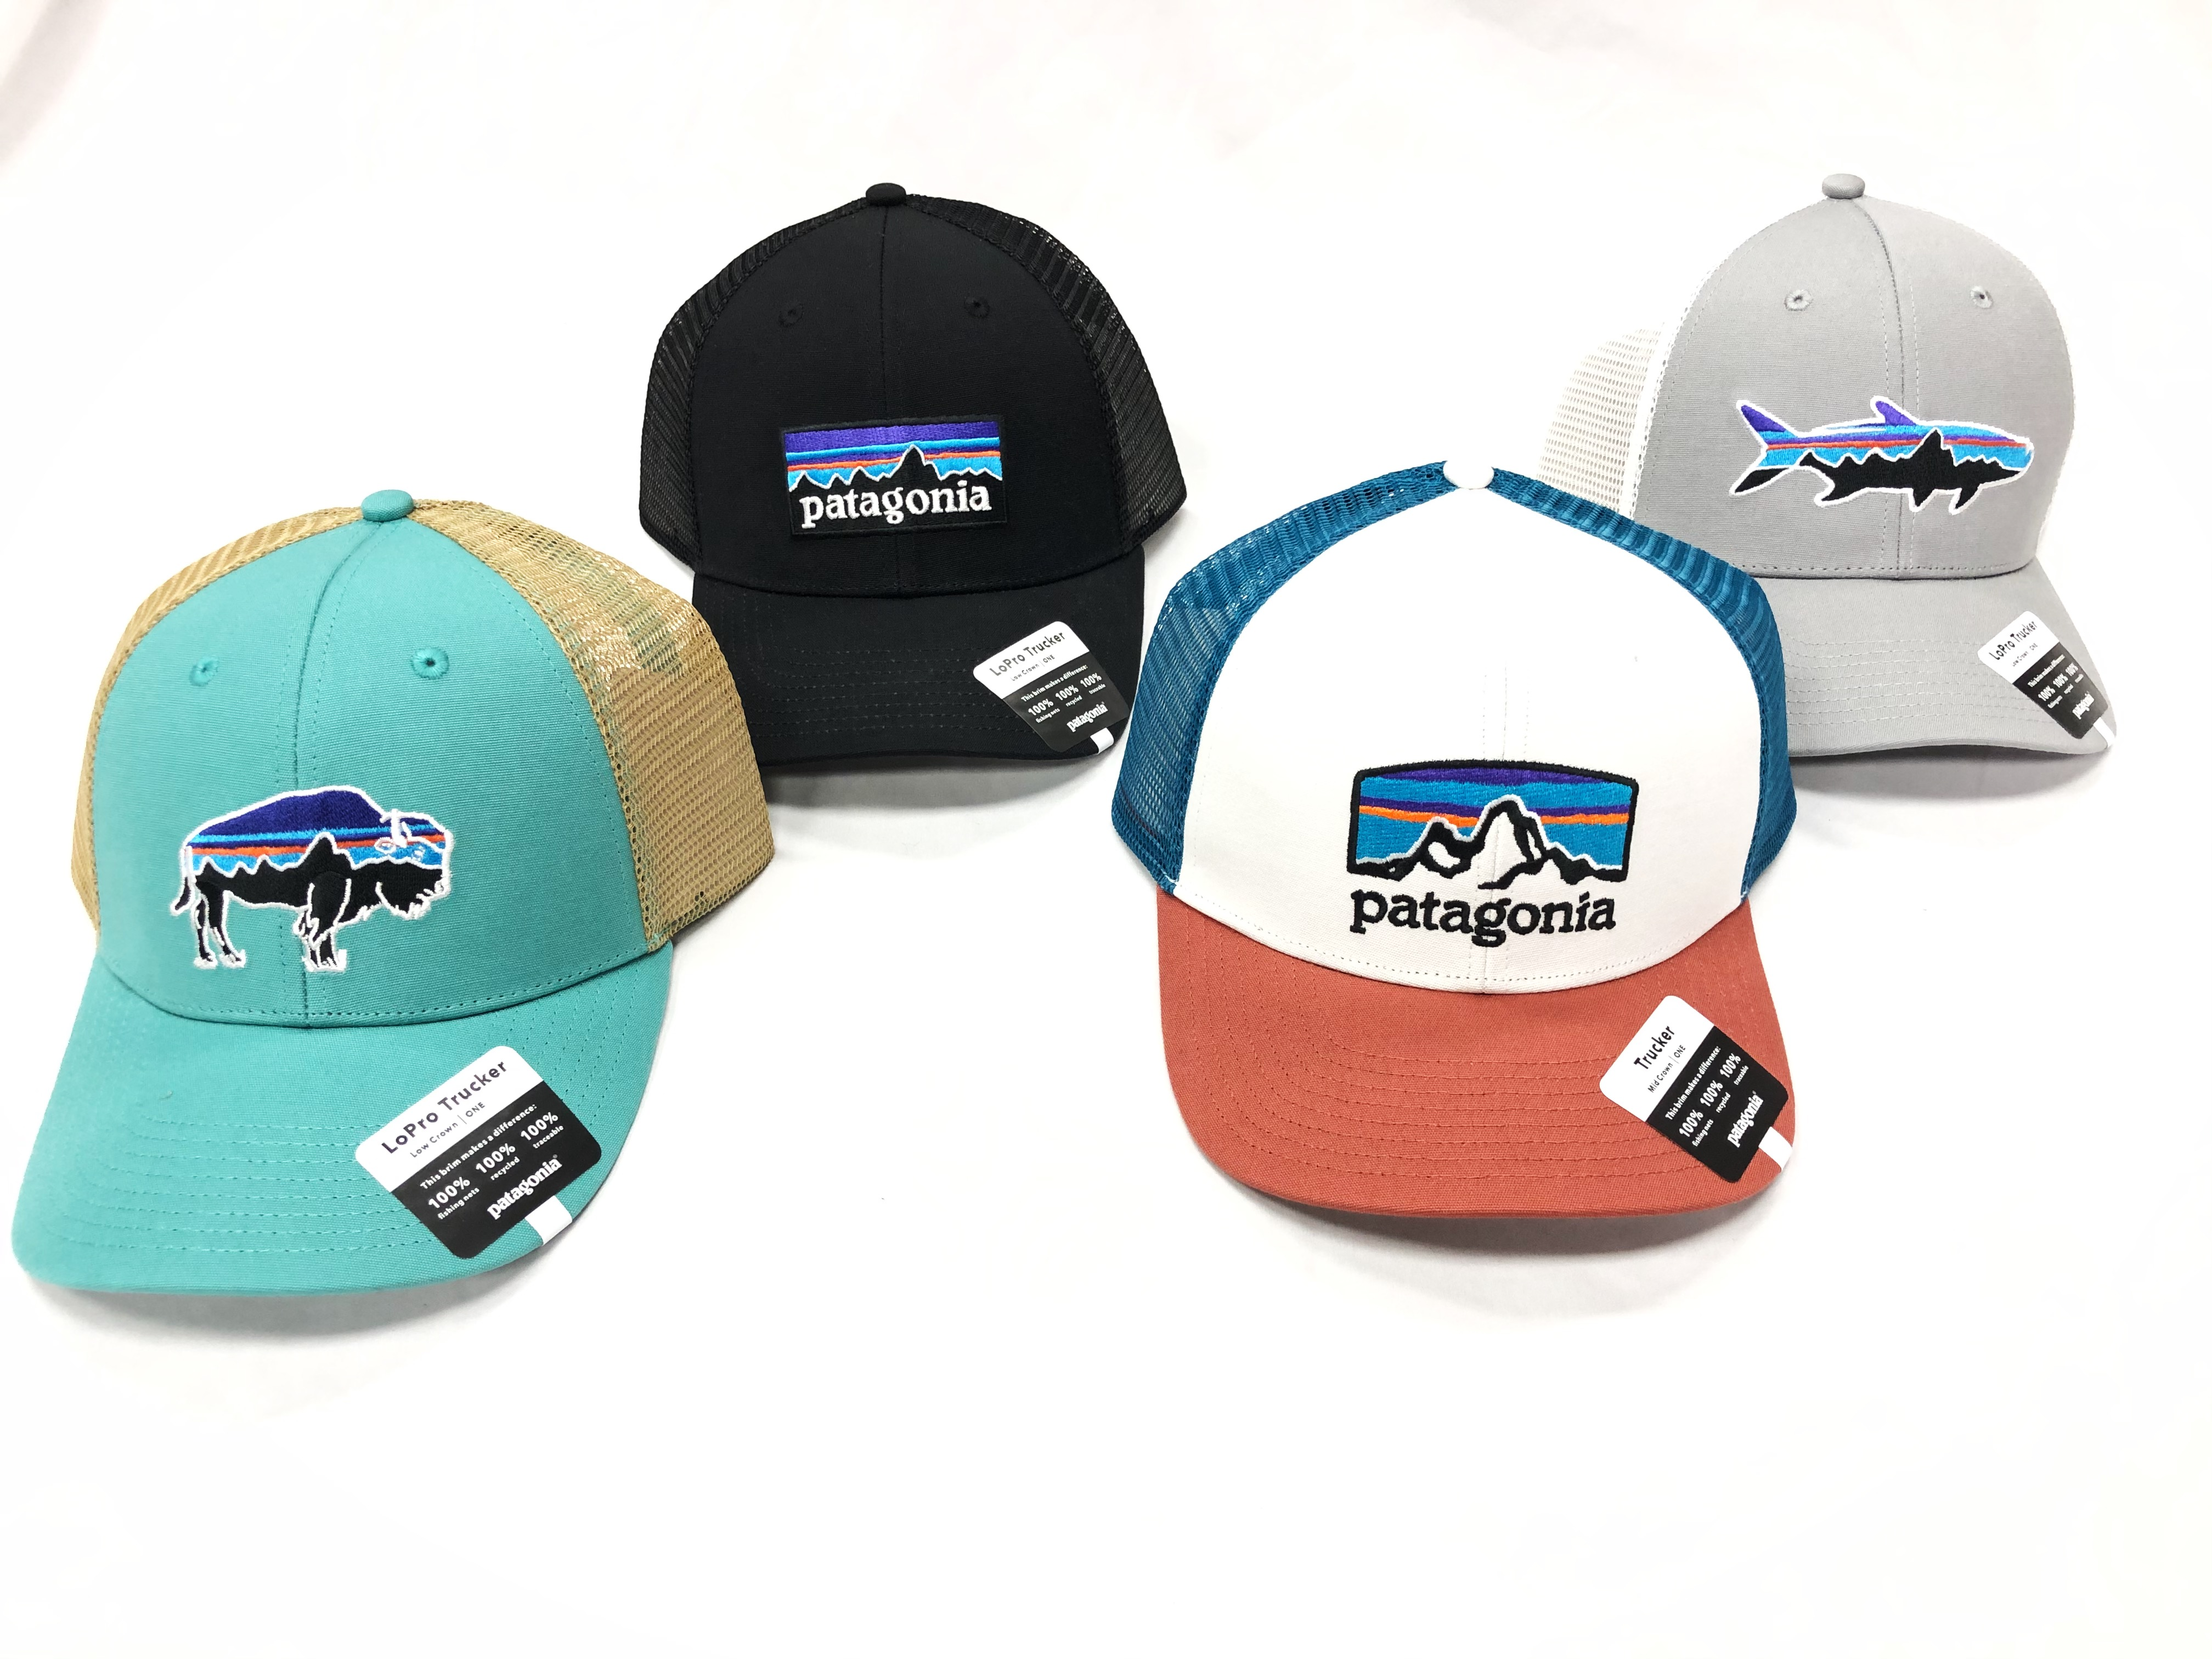 Patagonia Trucker Hats